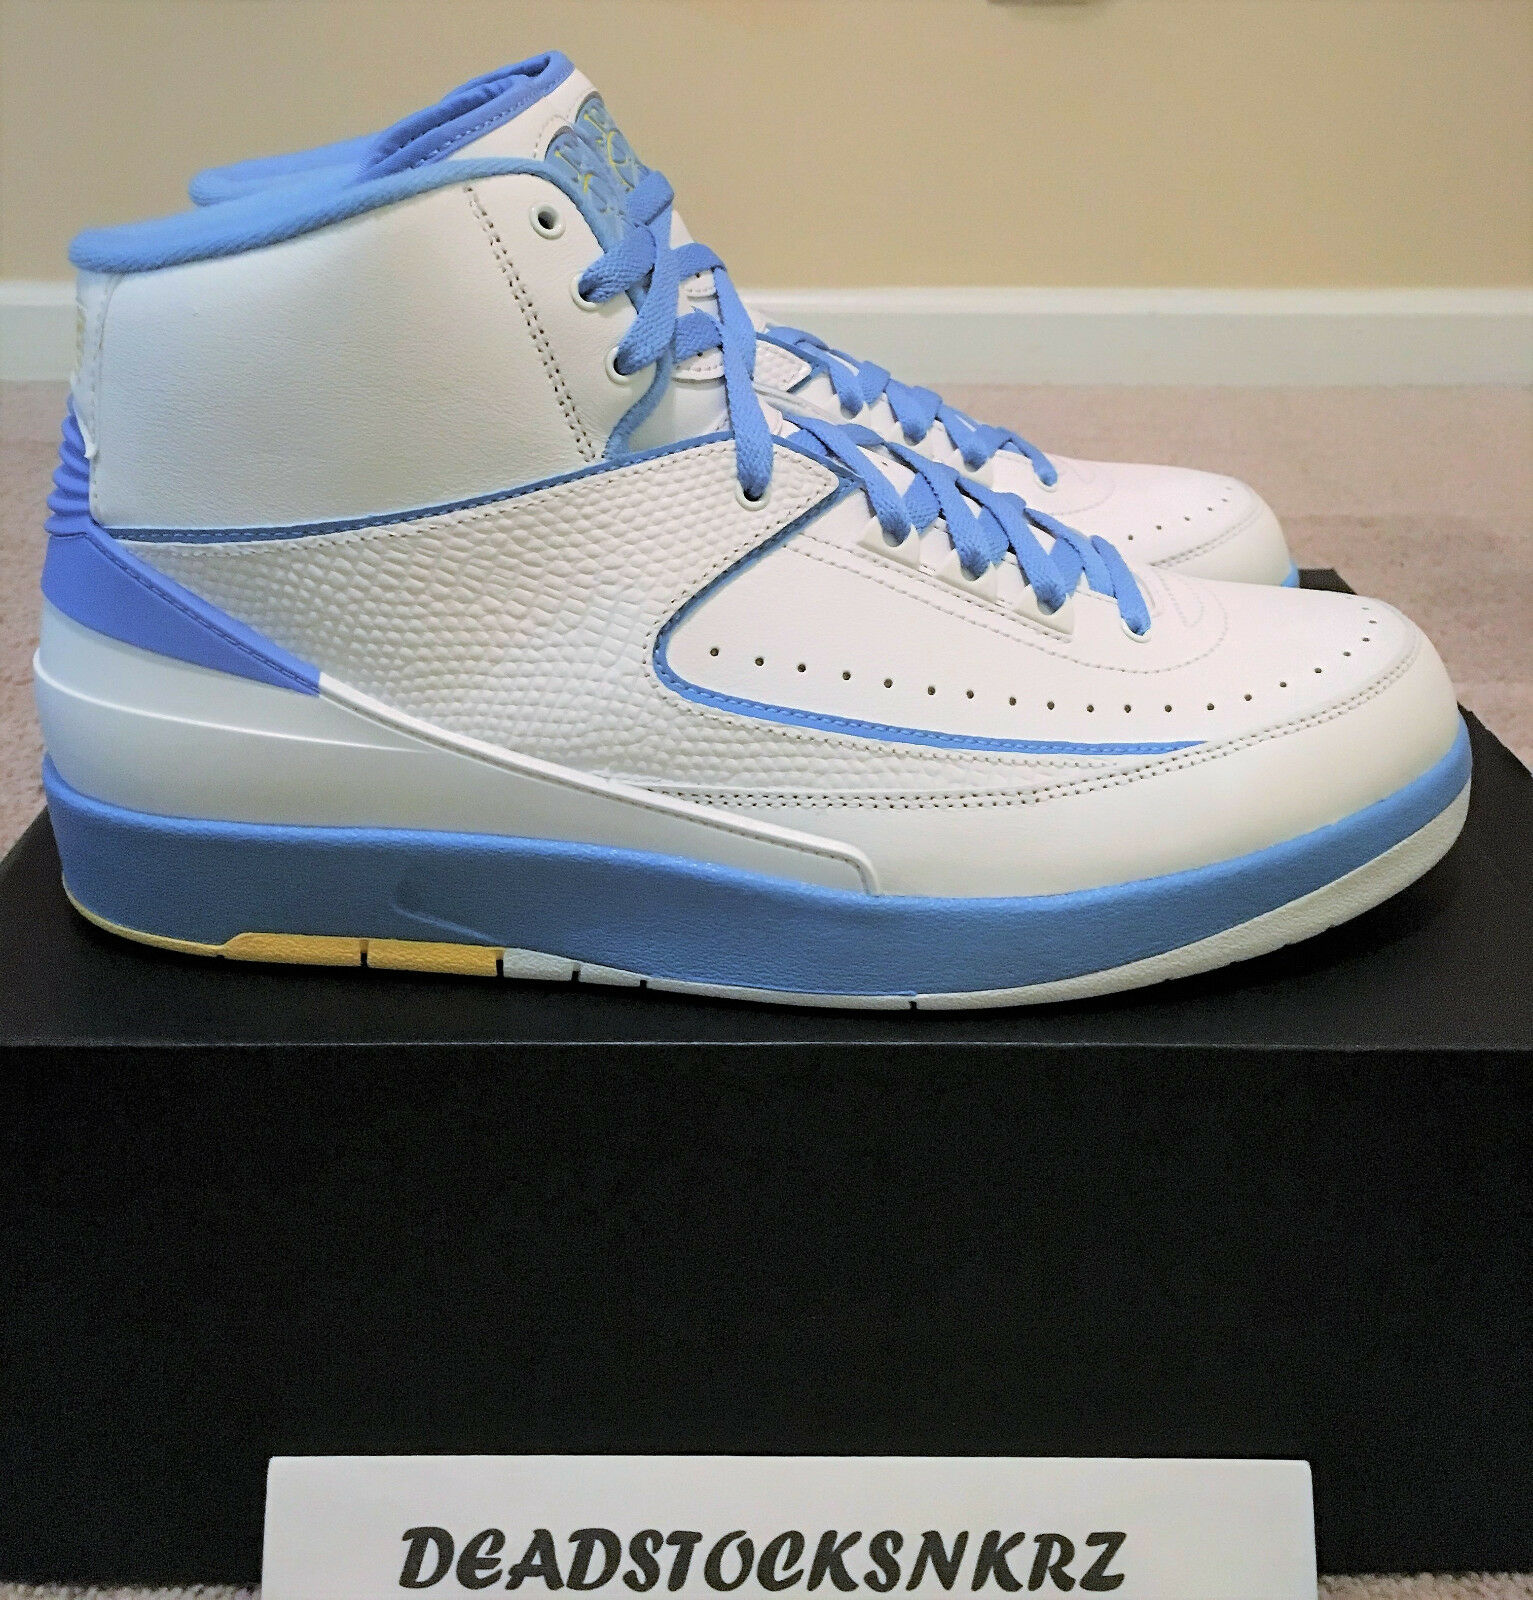 Nike Air Jordan 2 II Retro Melo White University Blue 385475 122 Size 10.5 & 12